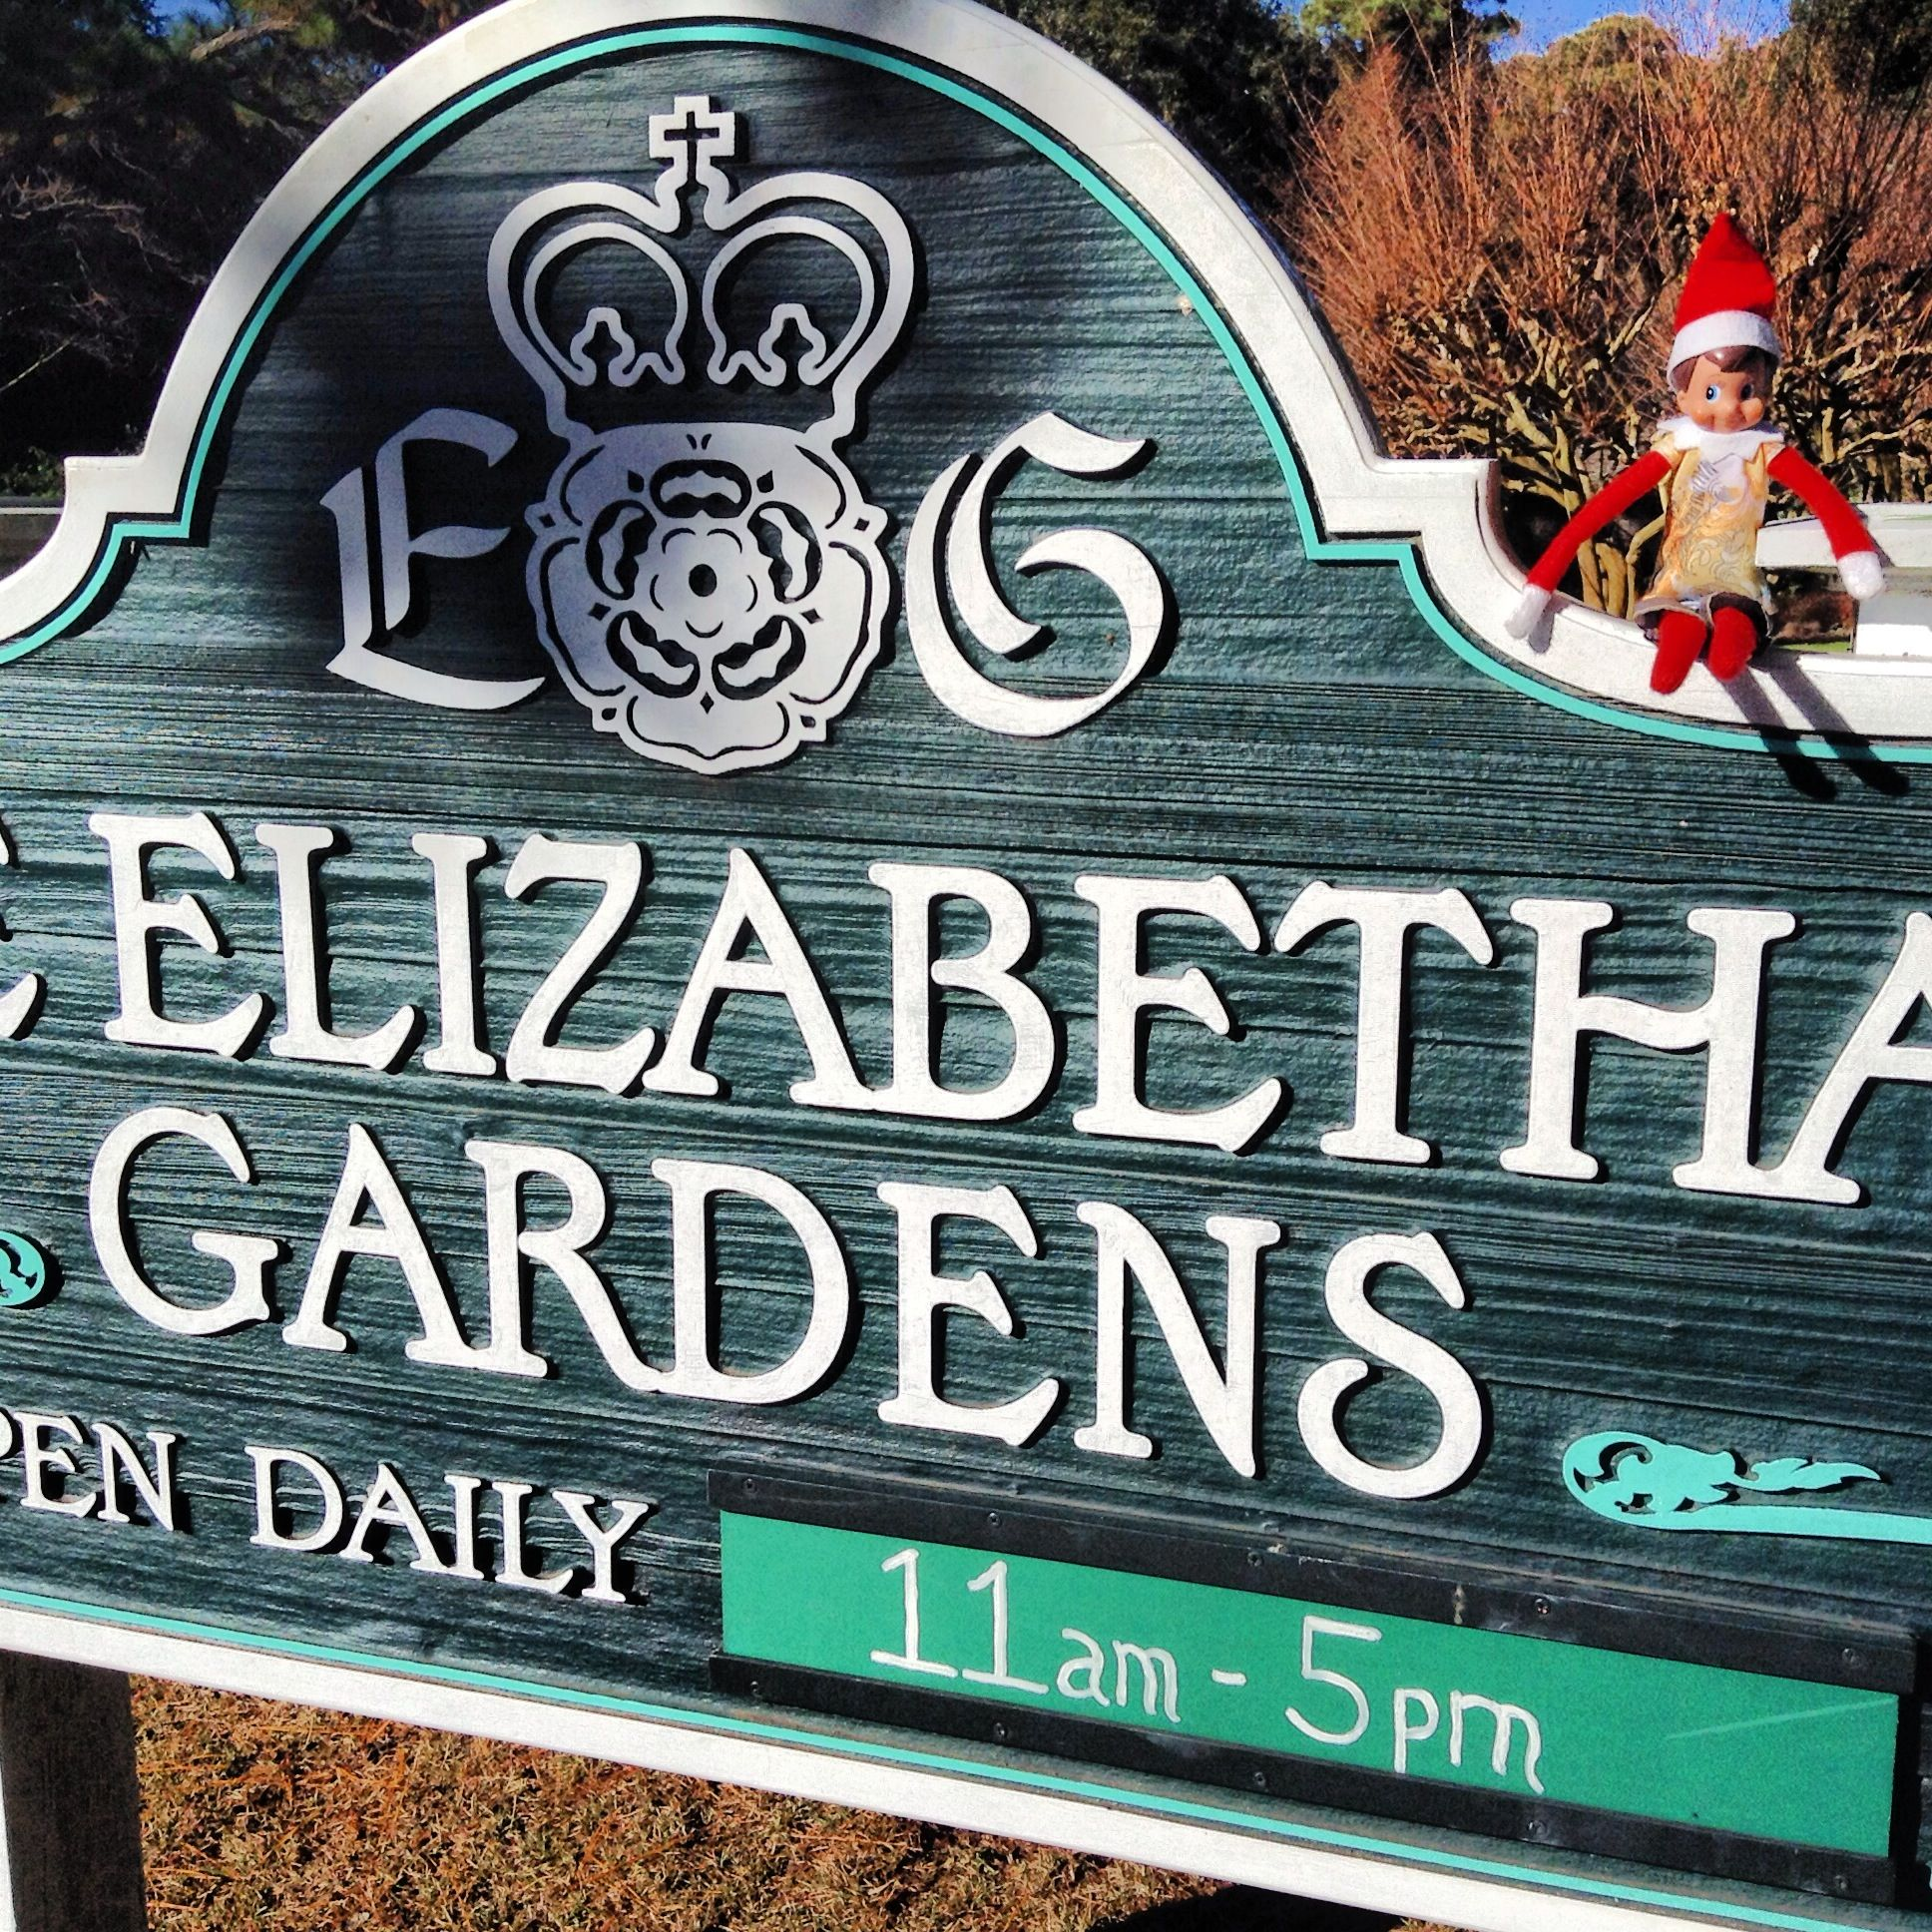 Sunny, the Sun Realty elf, visited the Elizabethan Gardens.